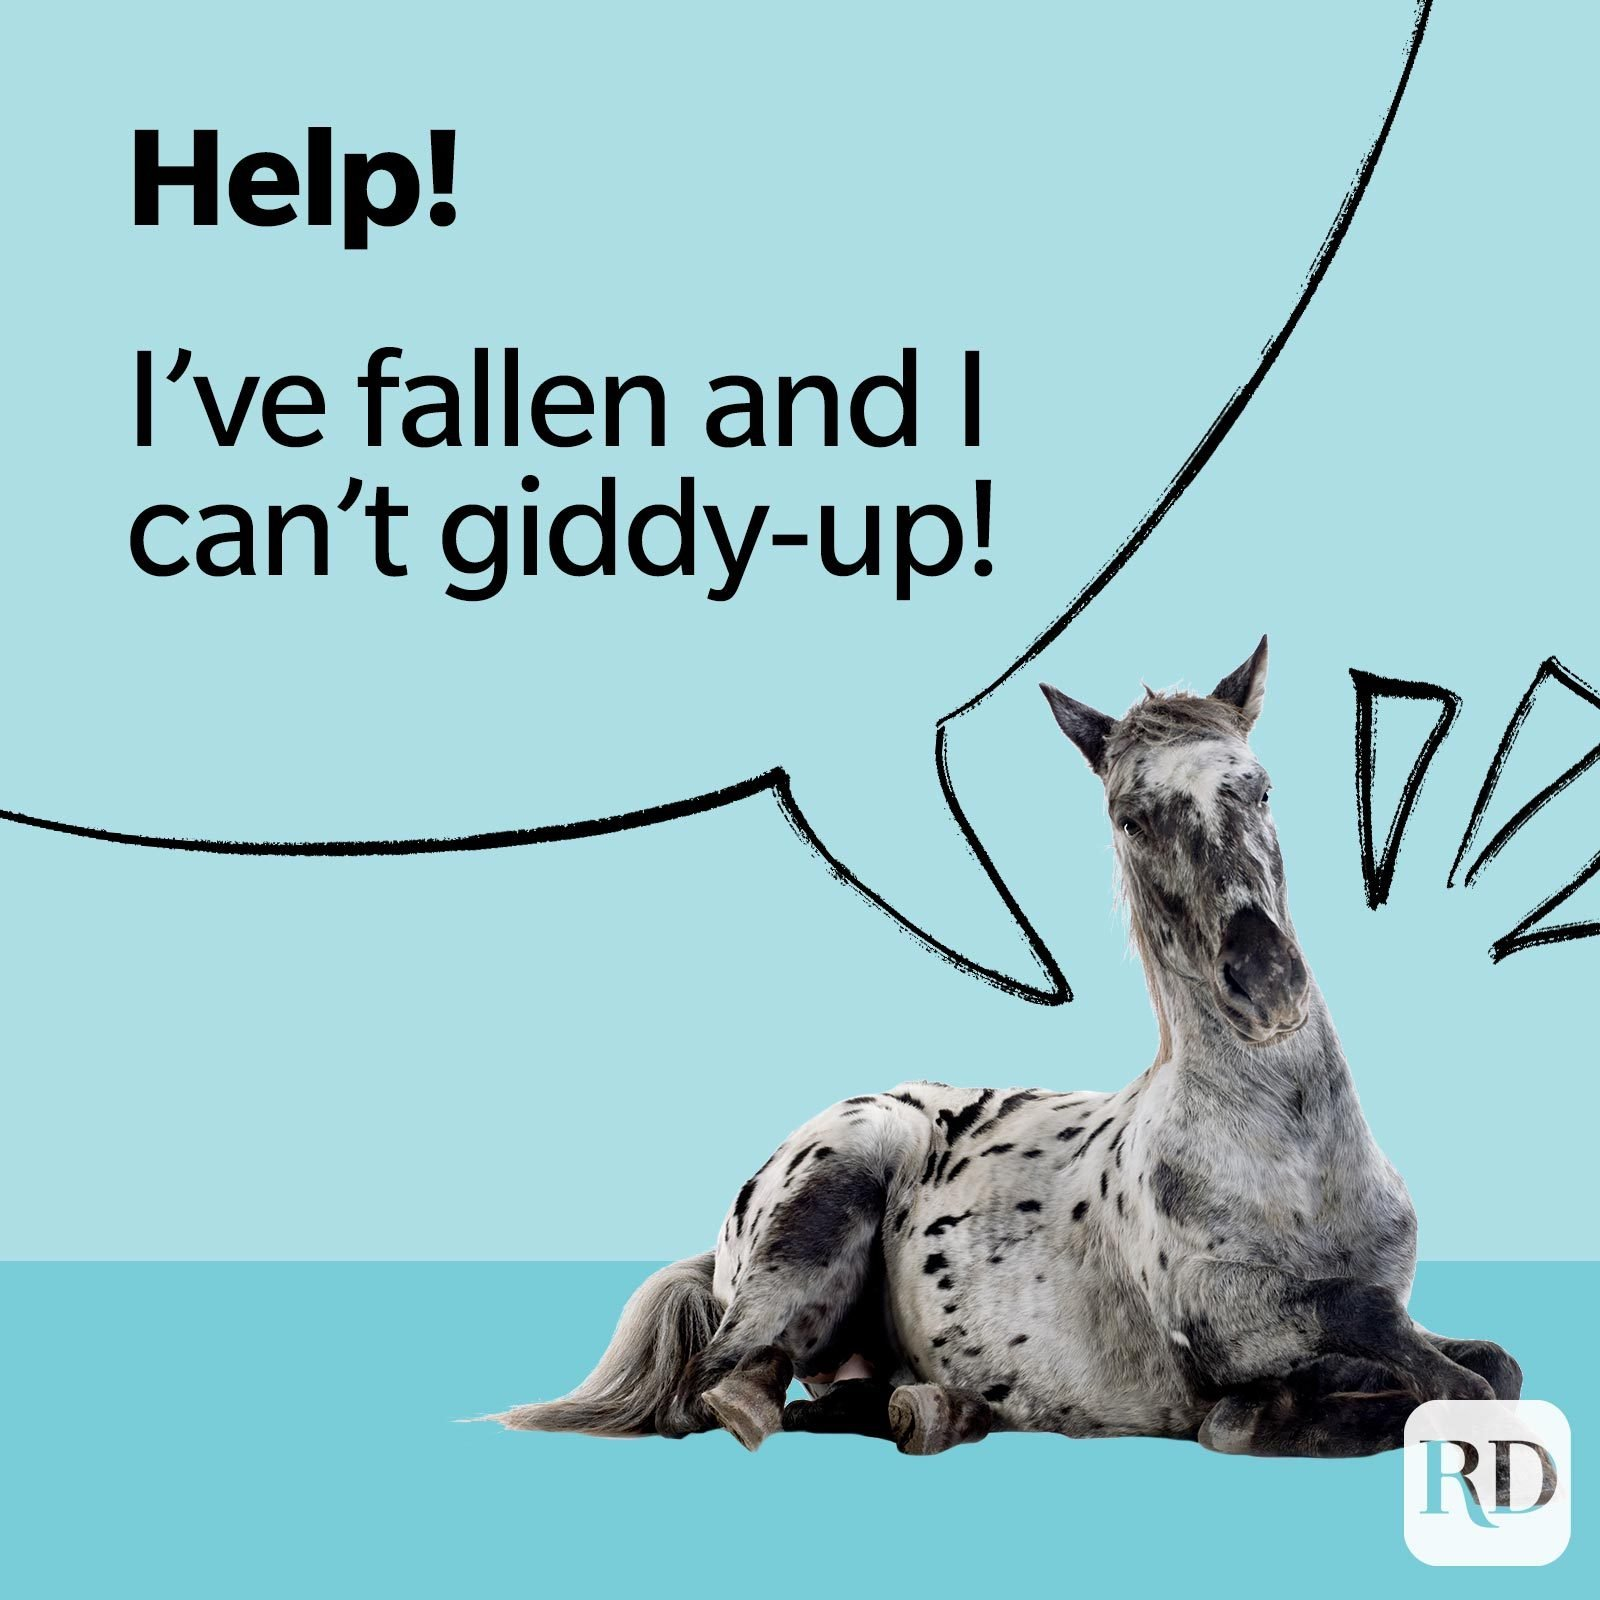 Help! I've fallen and can't giddy-up!